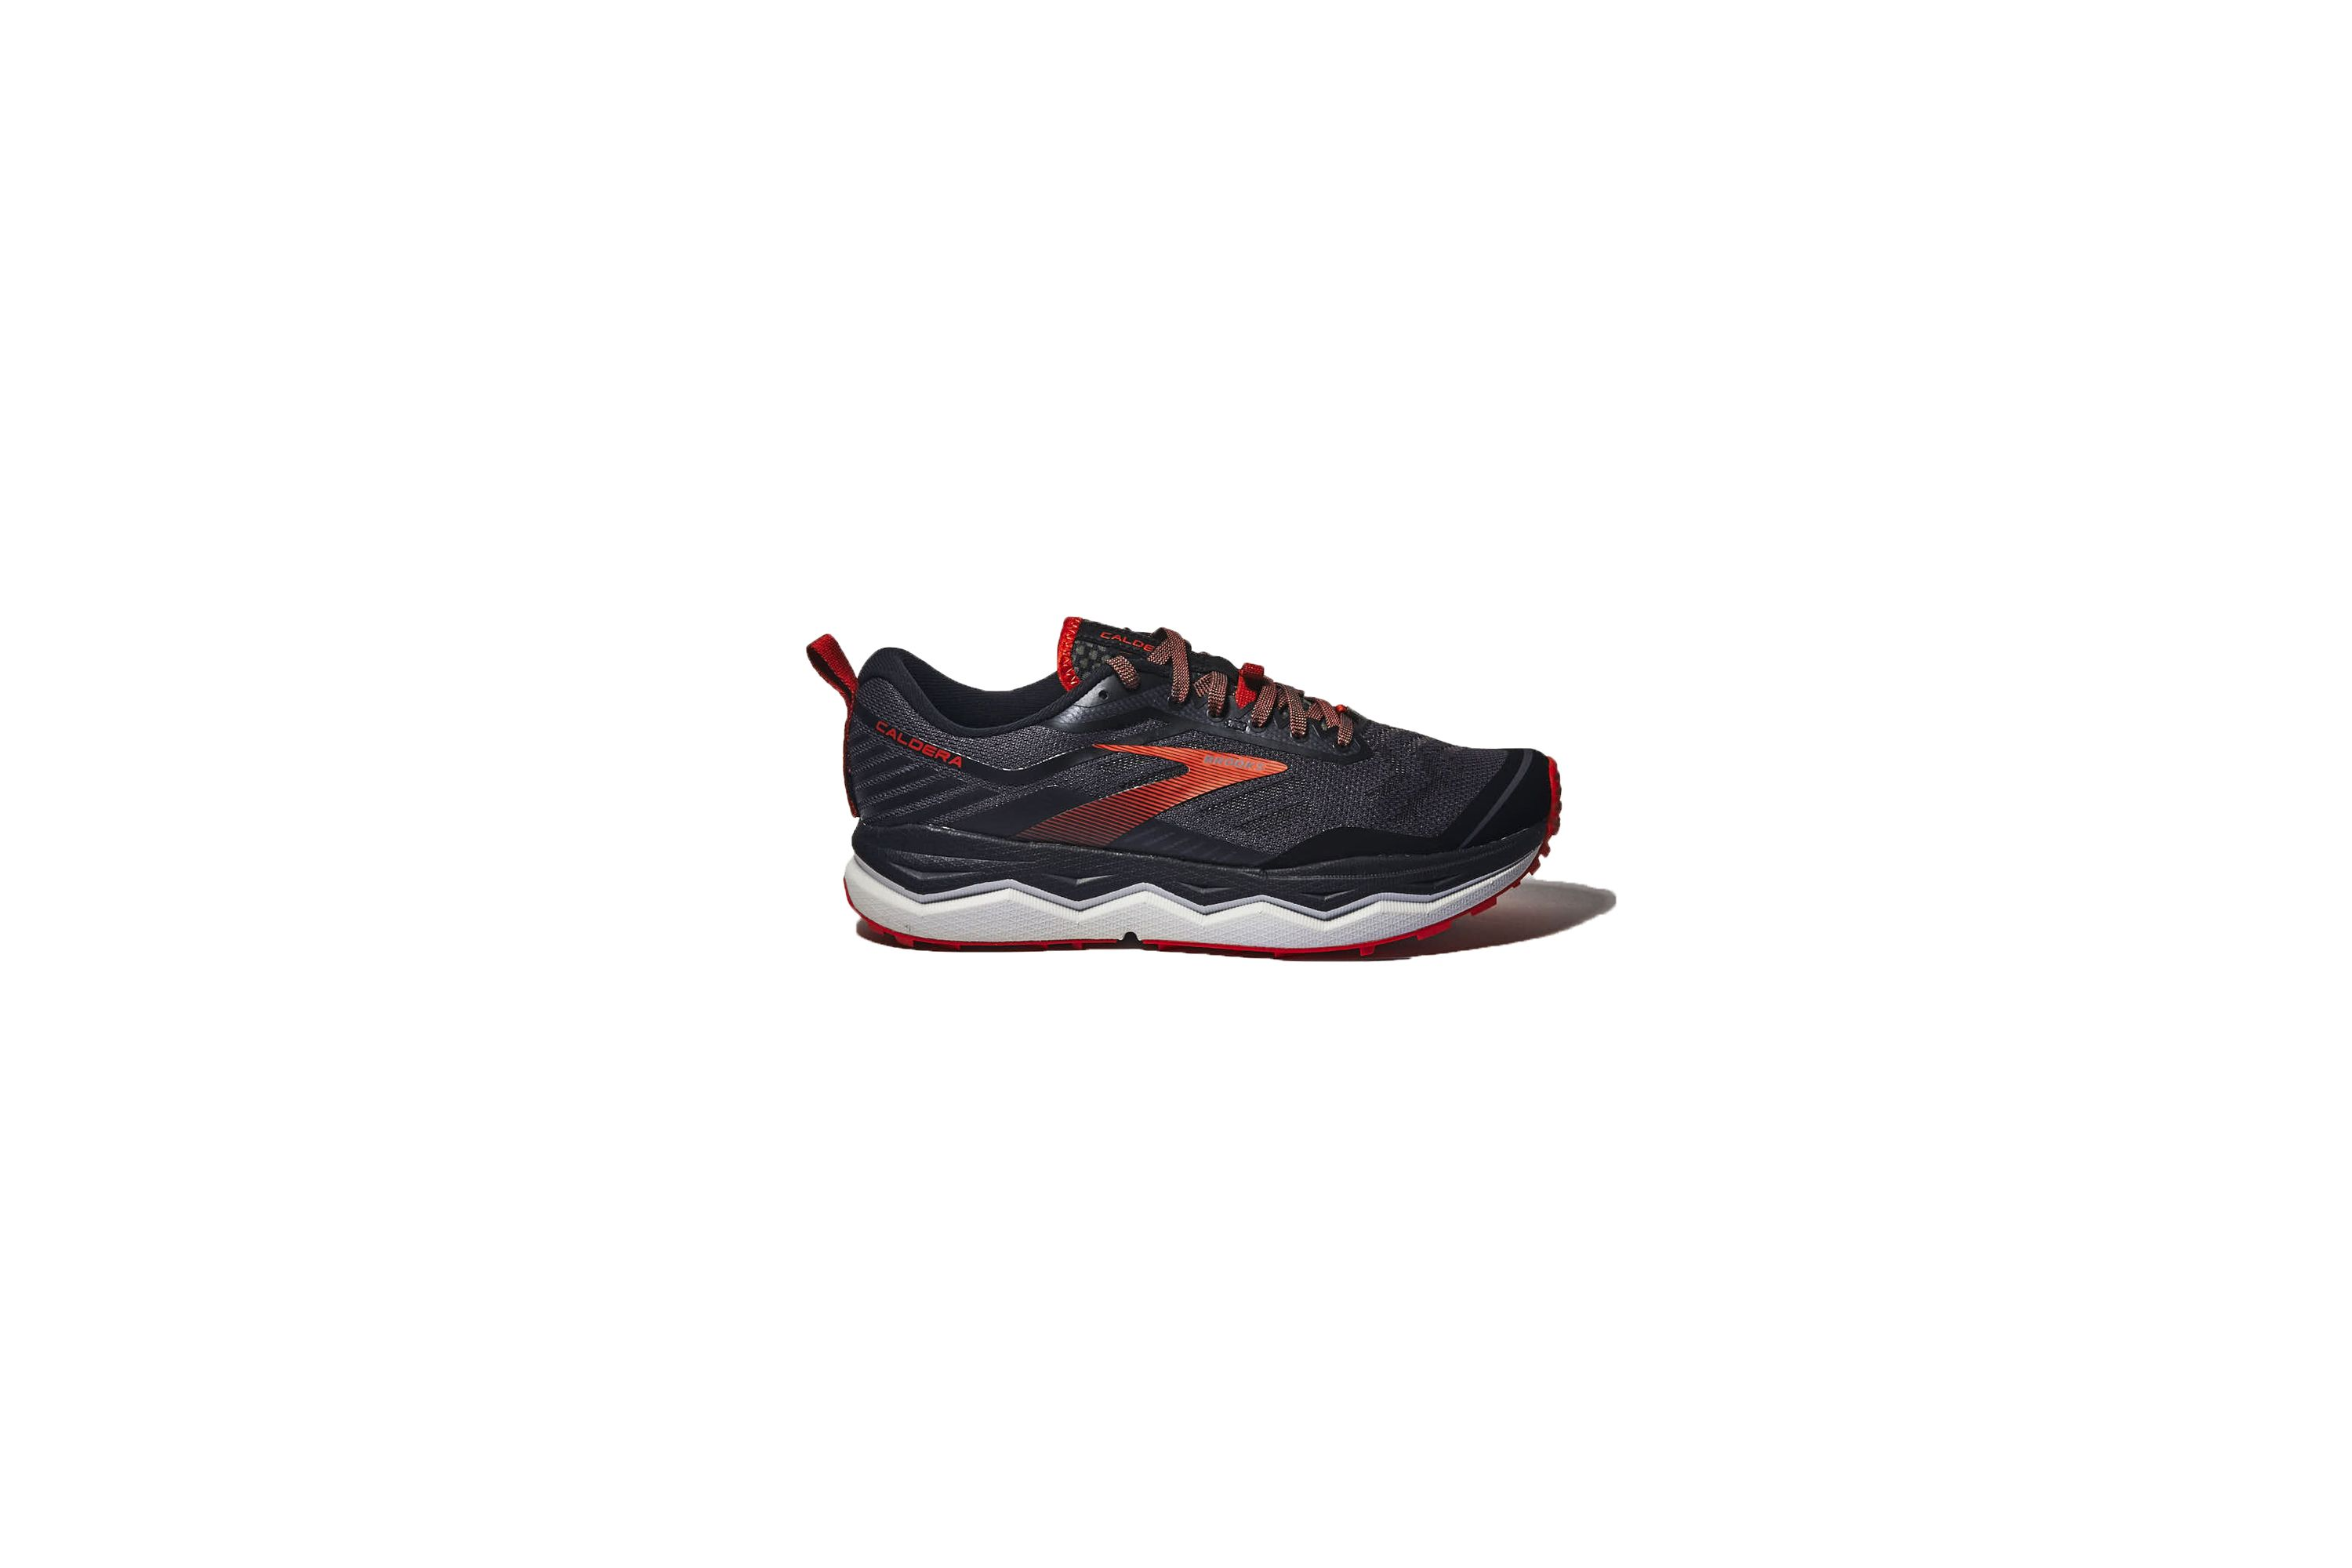 mizuno mens running shoes size 11 youtube track converter unidades